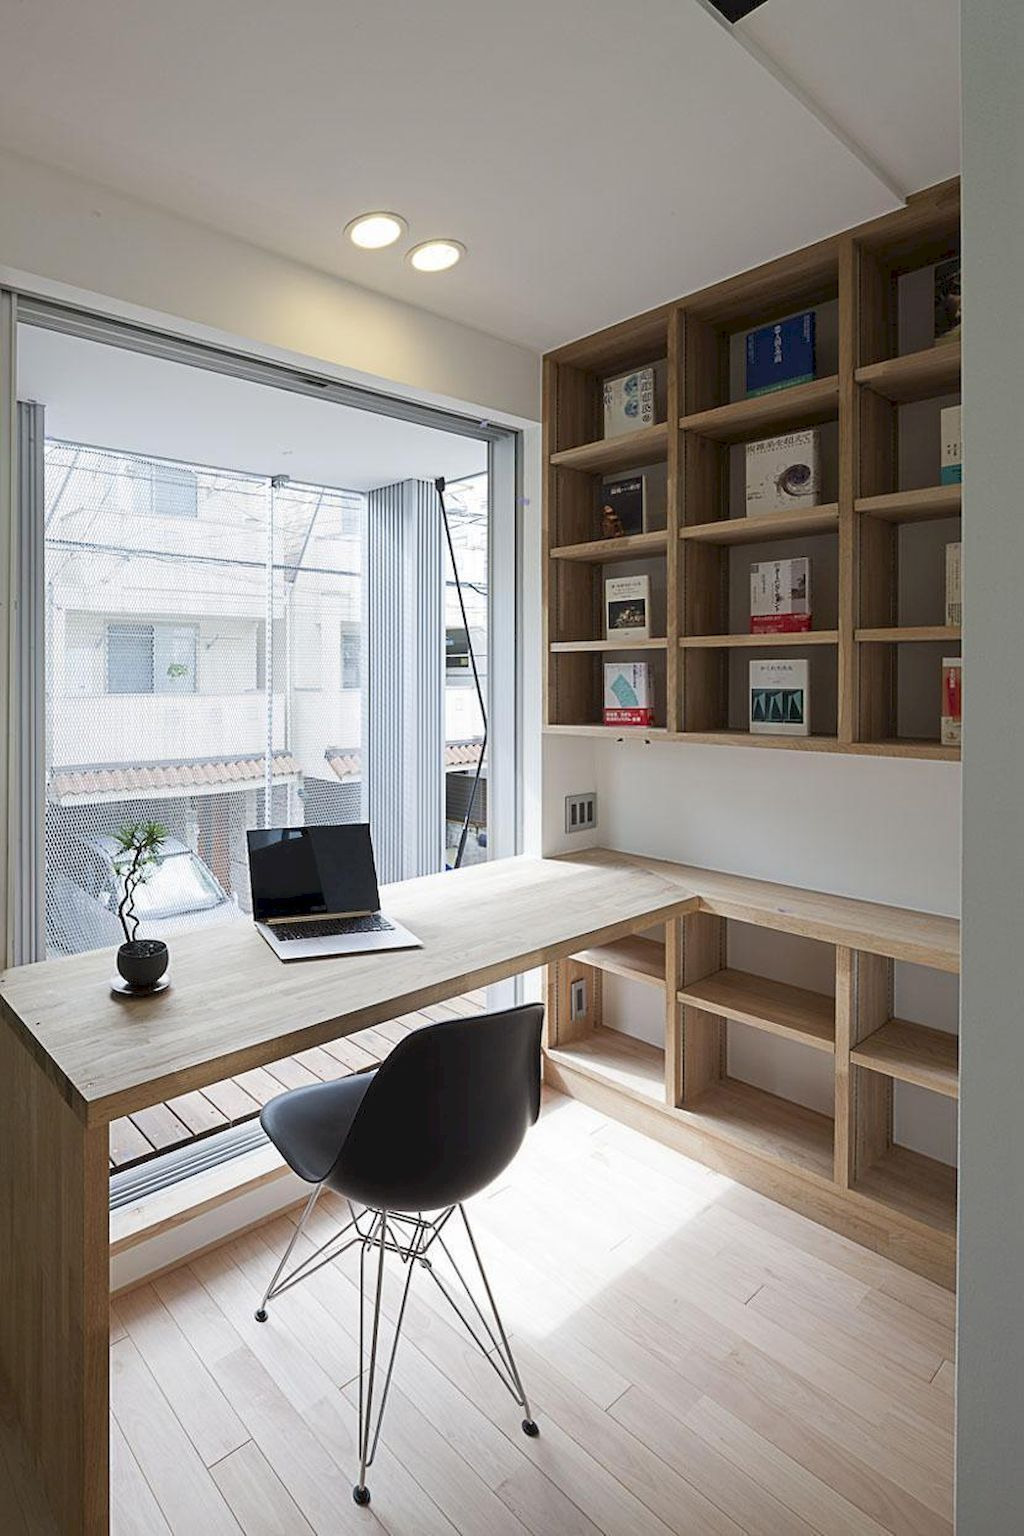 55 modern workspace design ideas small spaces (7) | Home ...